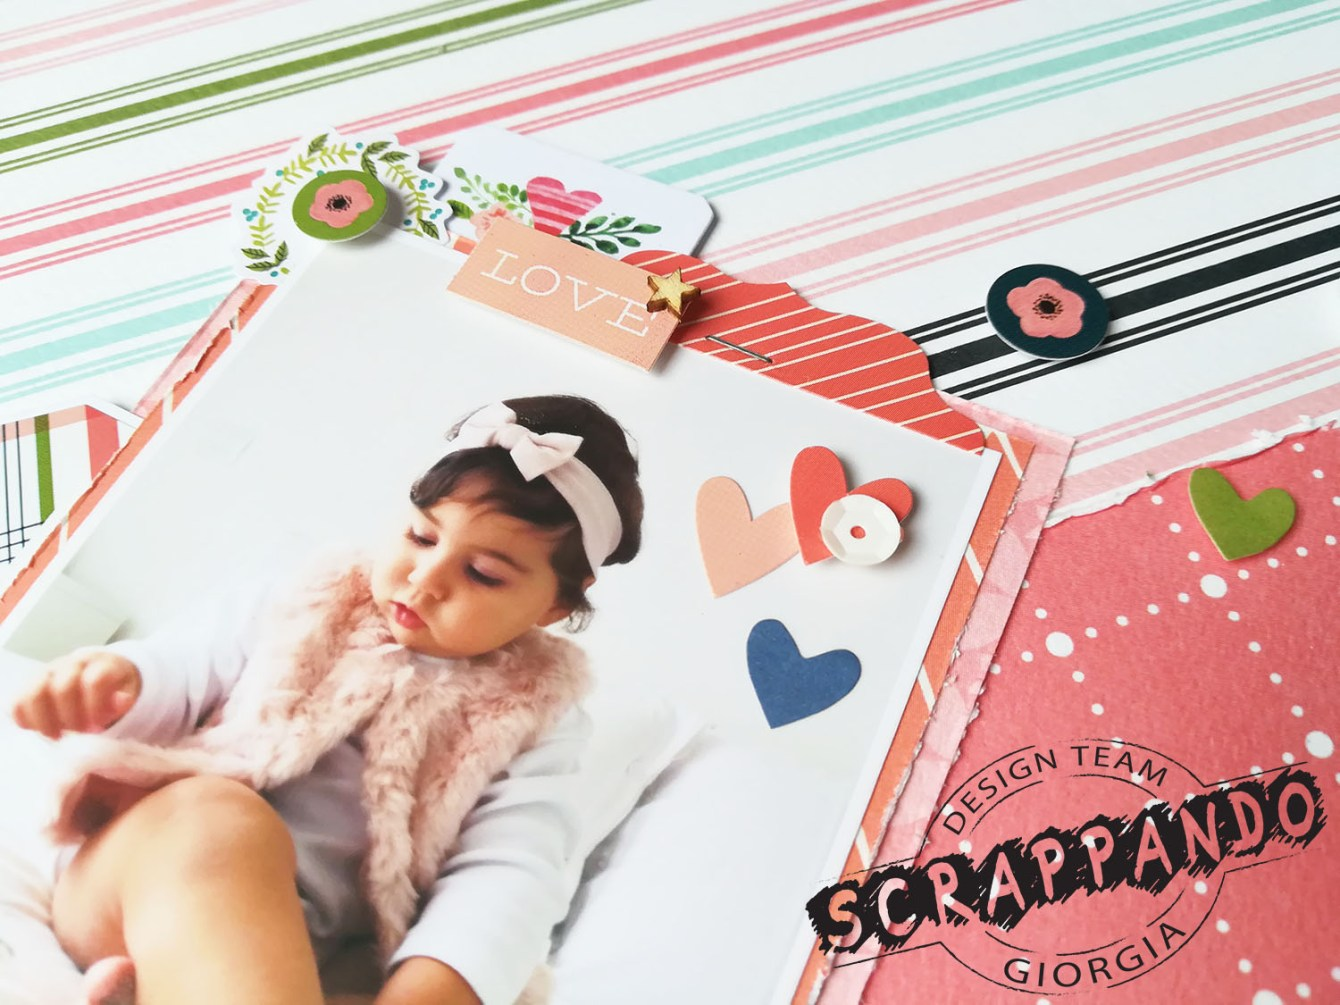 Giorgia Rossini for Scrappando